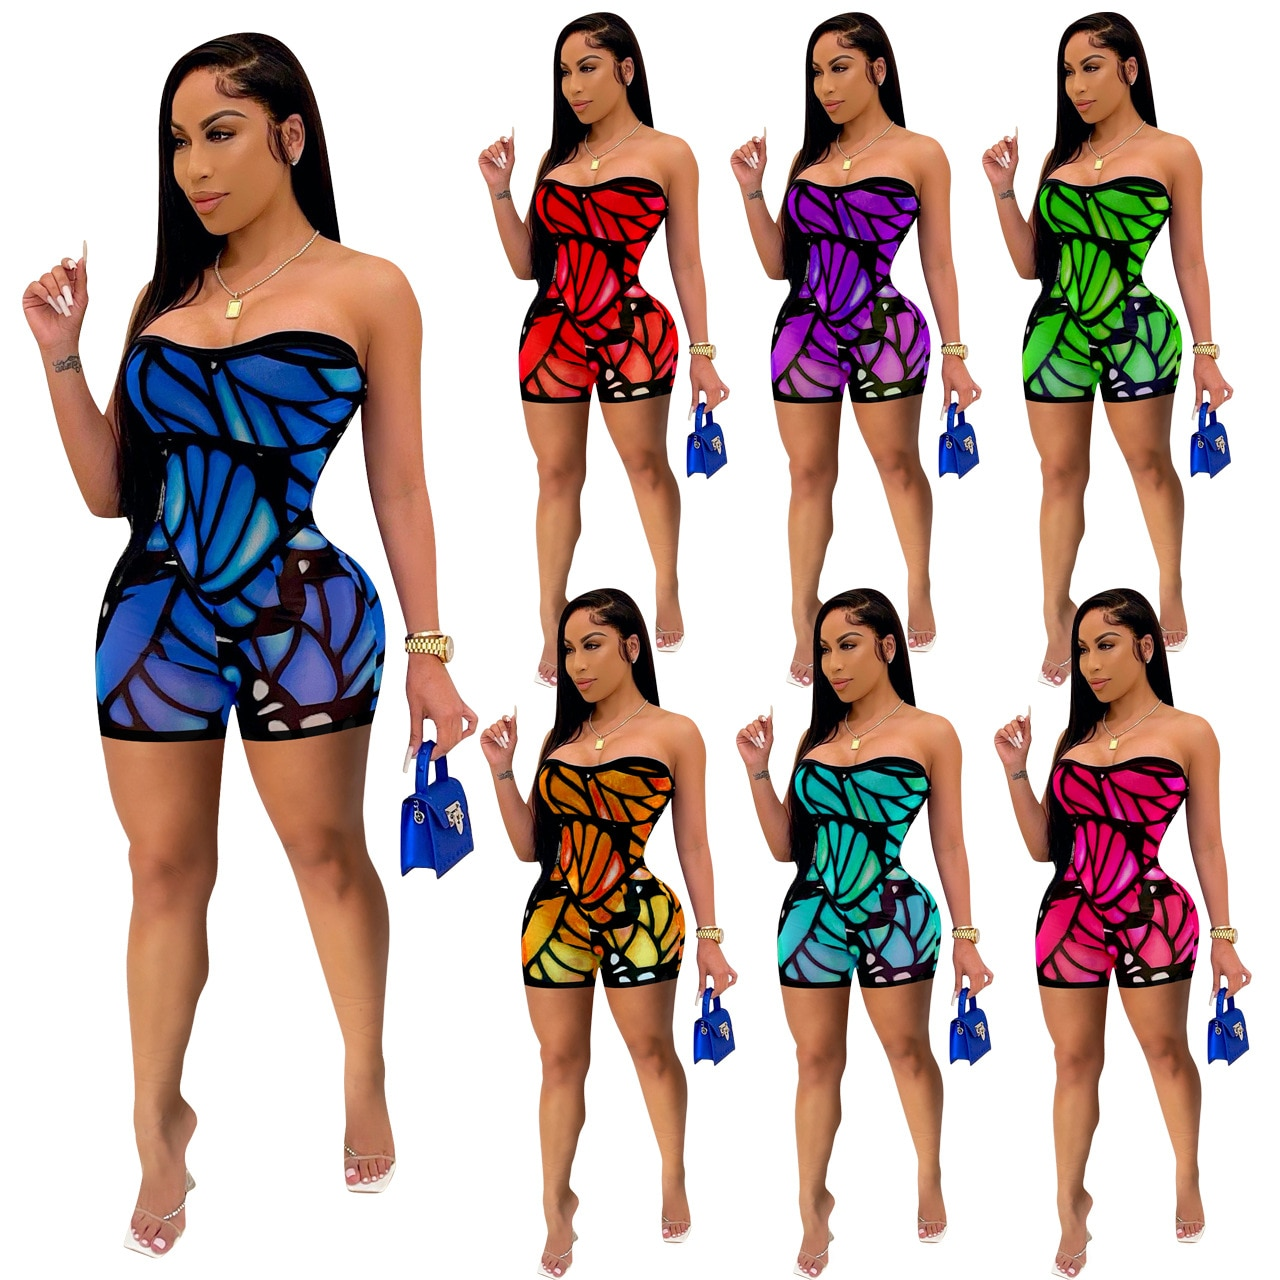 2021 European and American fashion hot style women's clothing printed skinny sexy suit jumpsuit